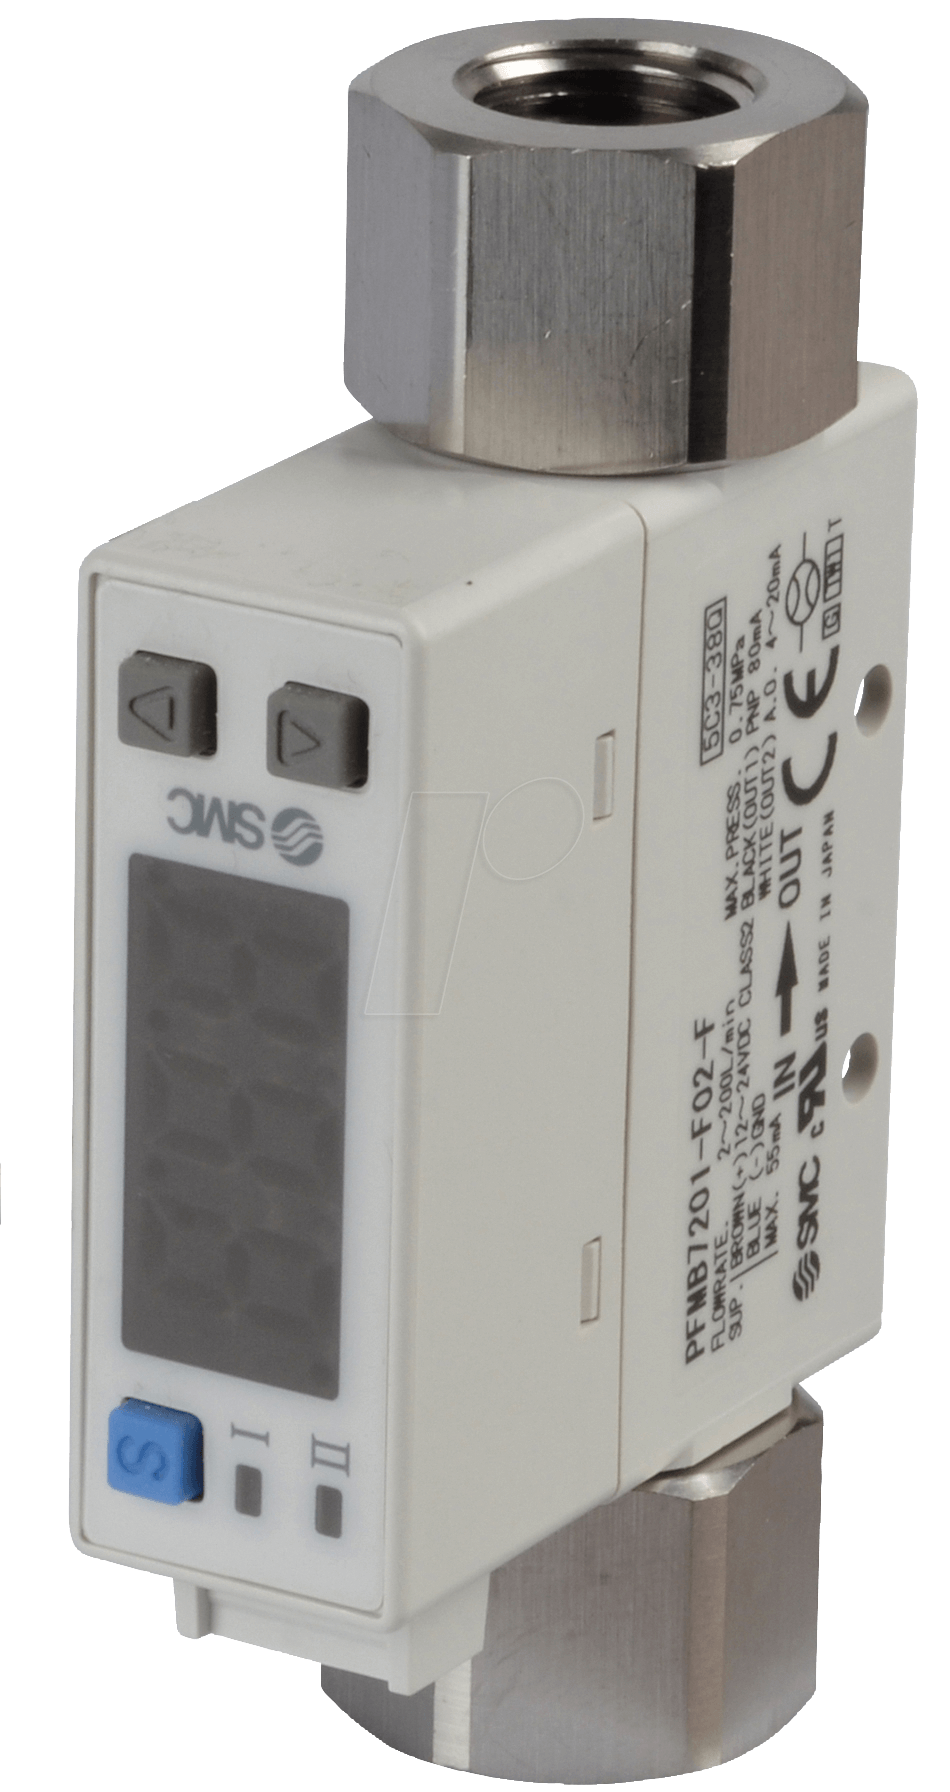 Pfmb7201 F02 F Flow Switch 2 200 L Min Output 4